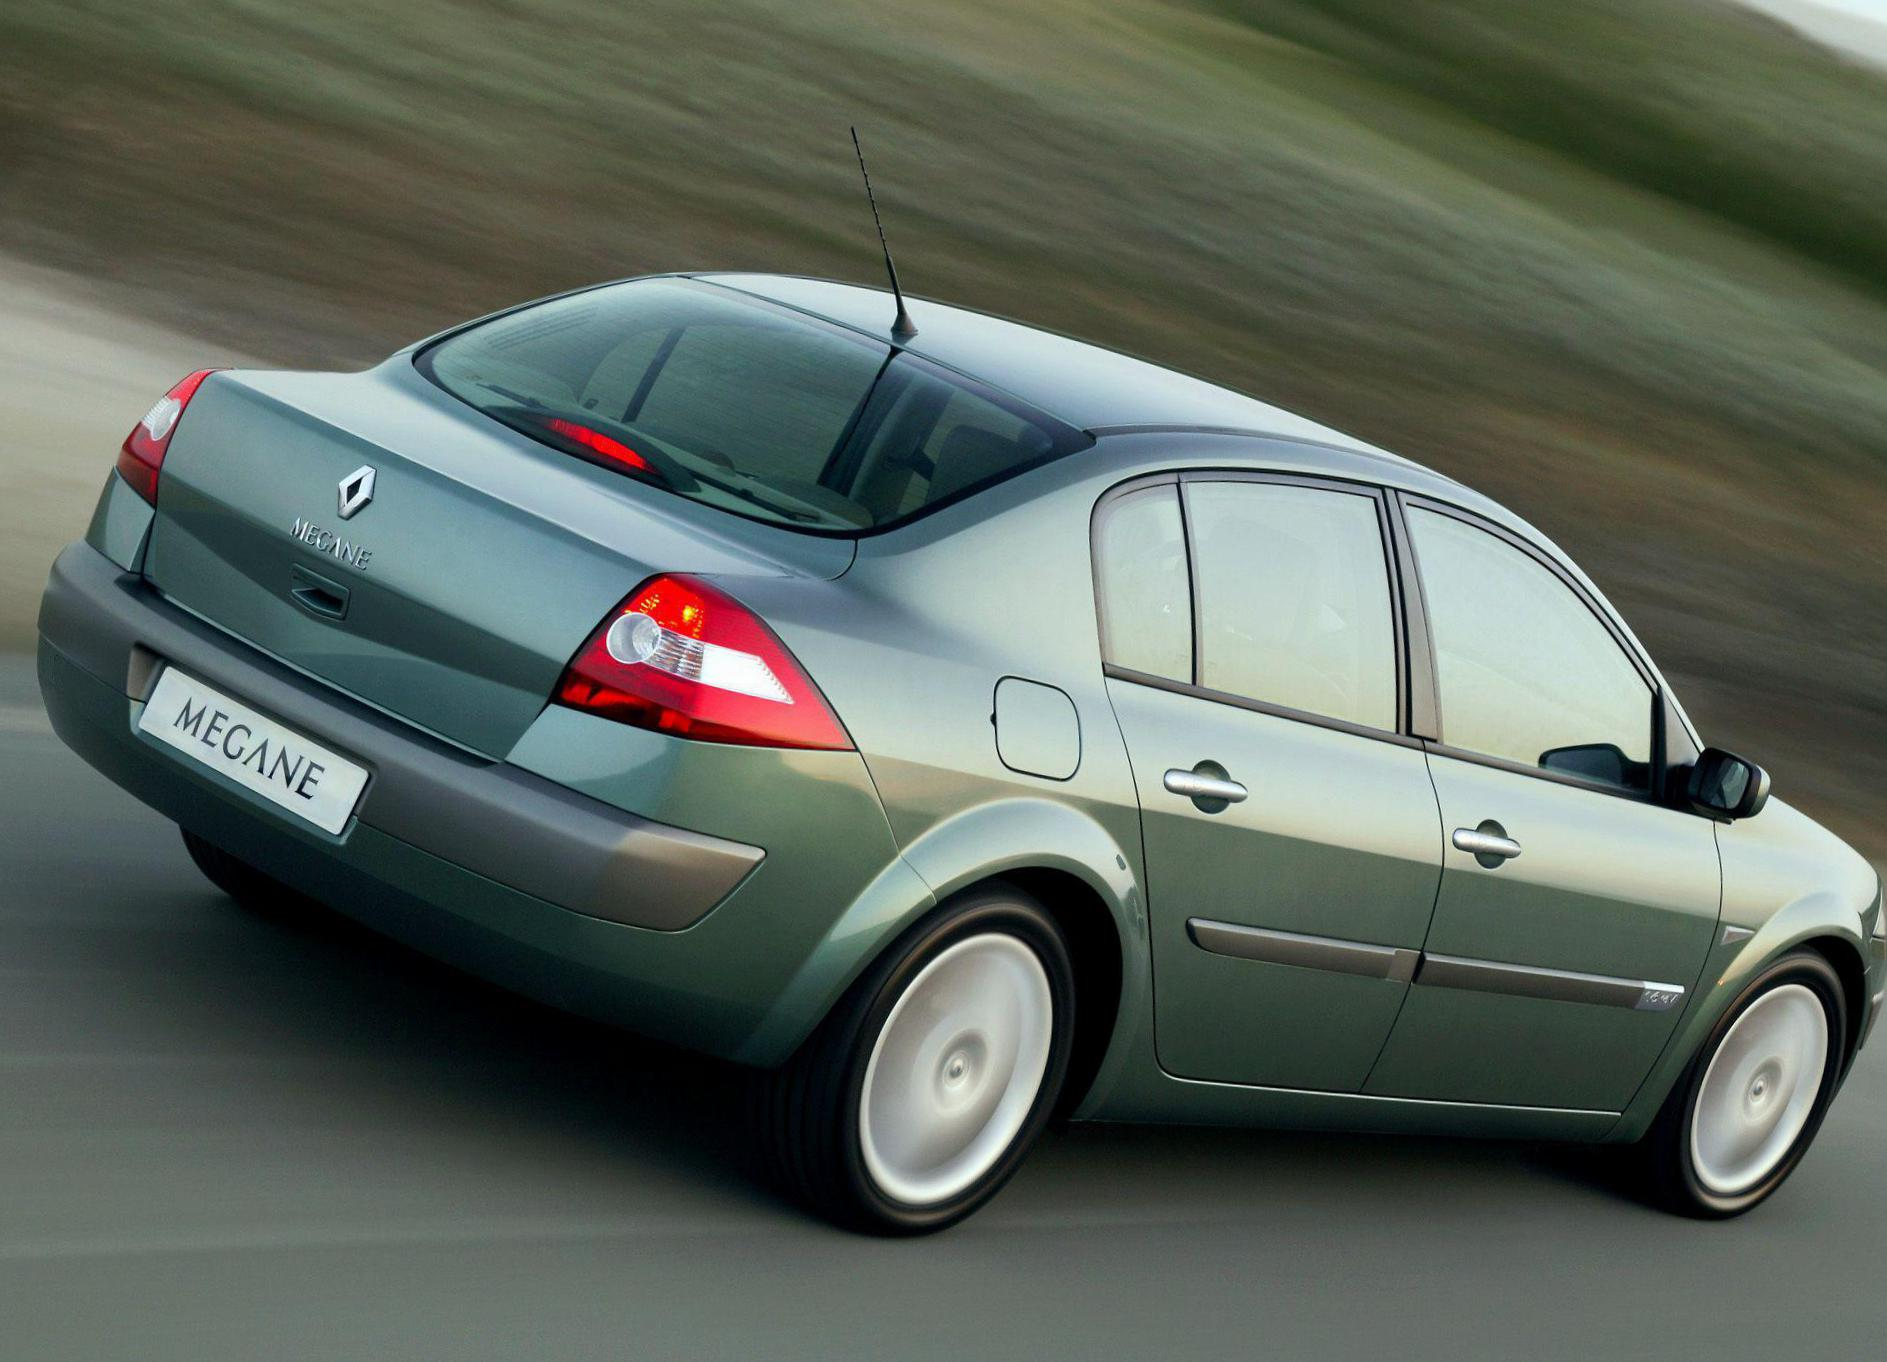 Renault Megane Sedan approved 2010